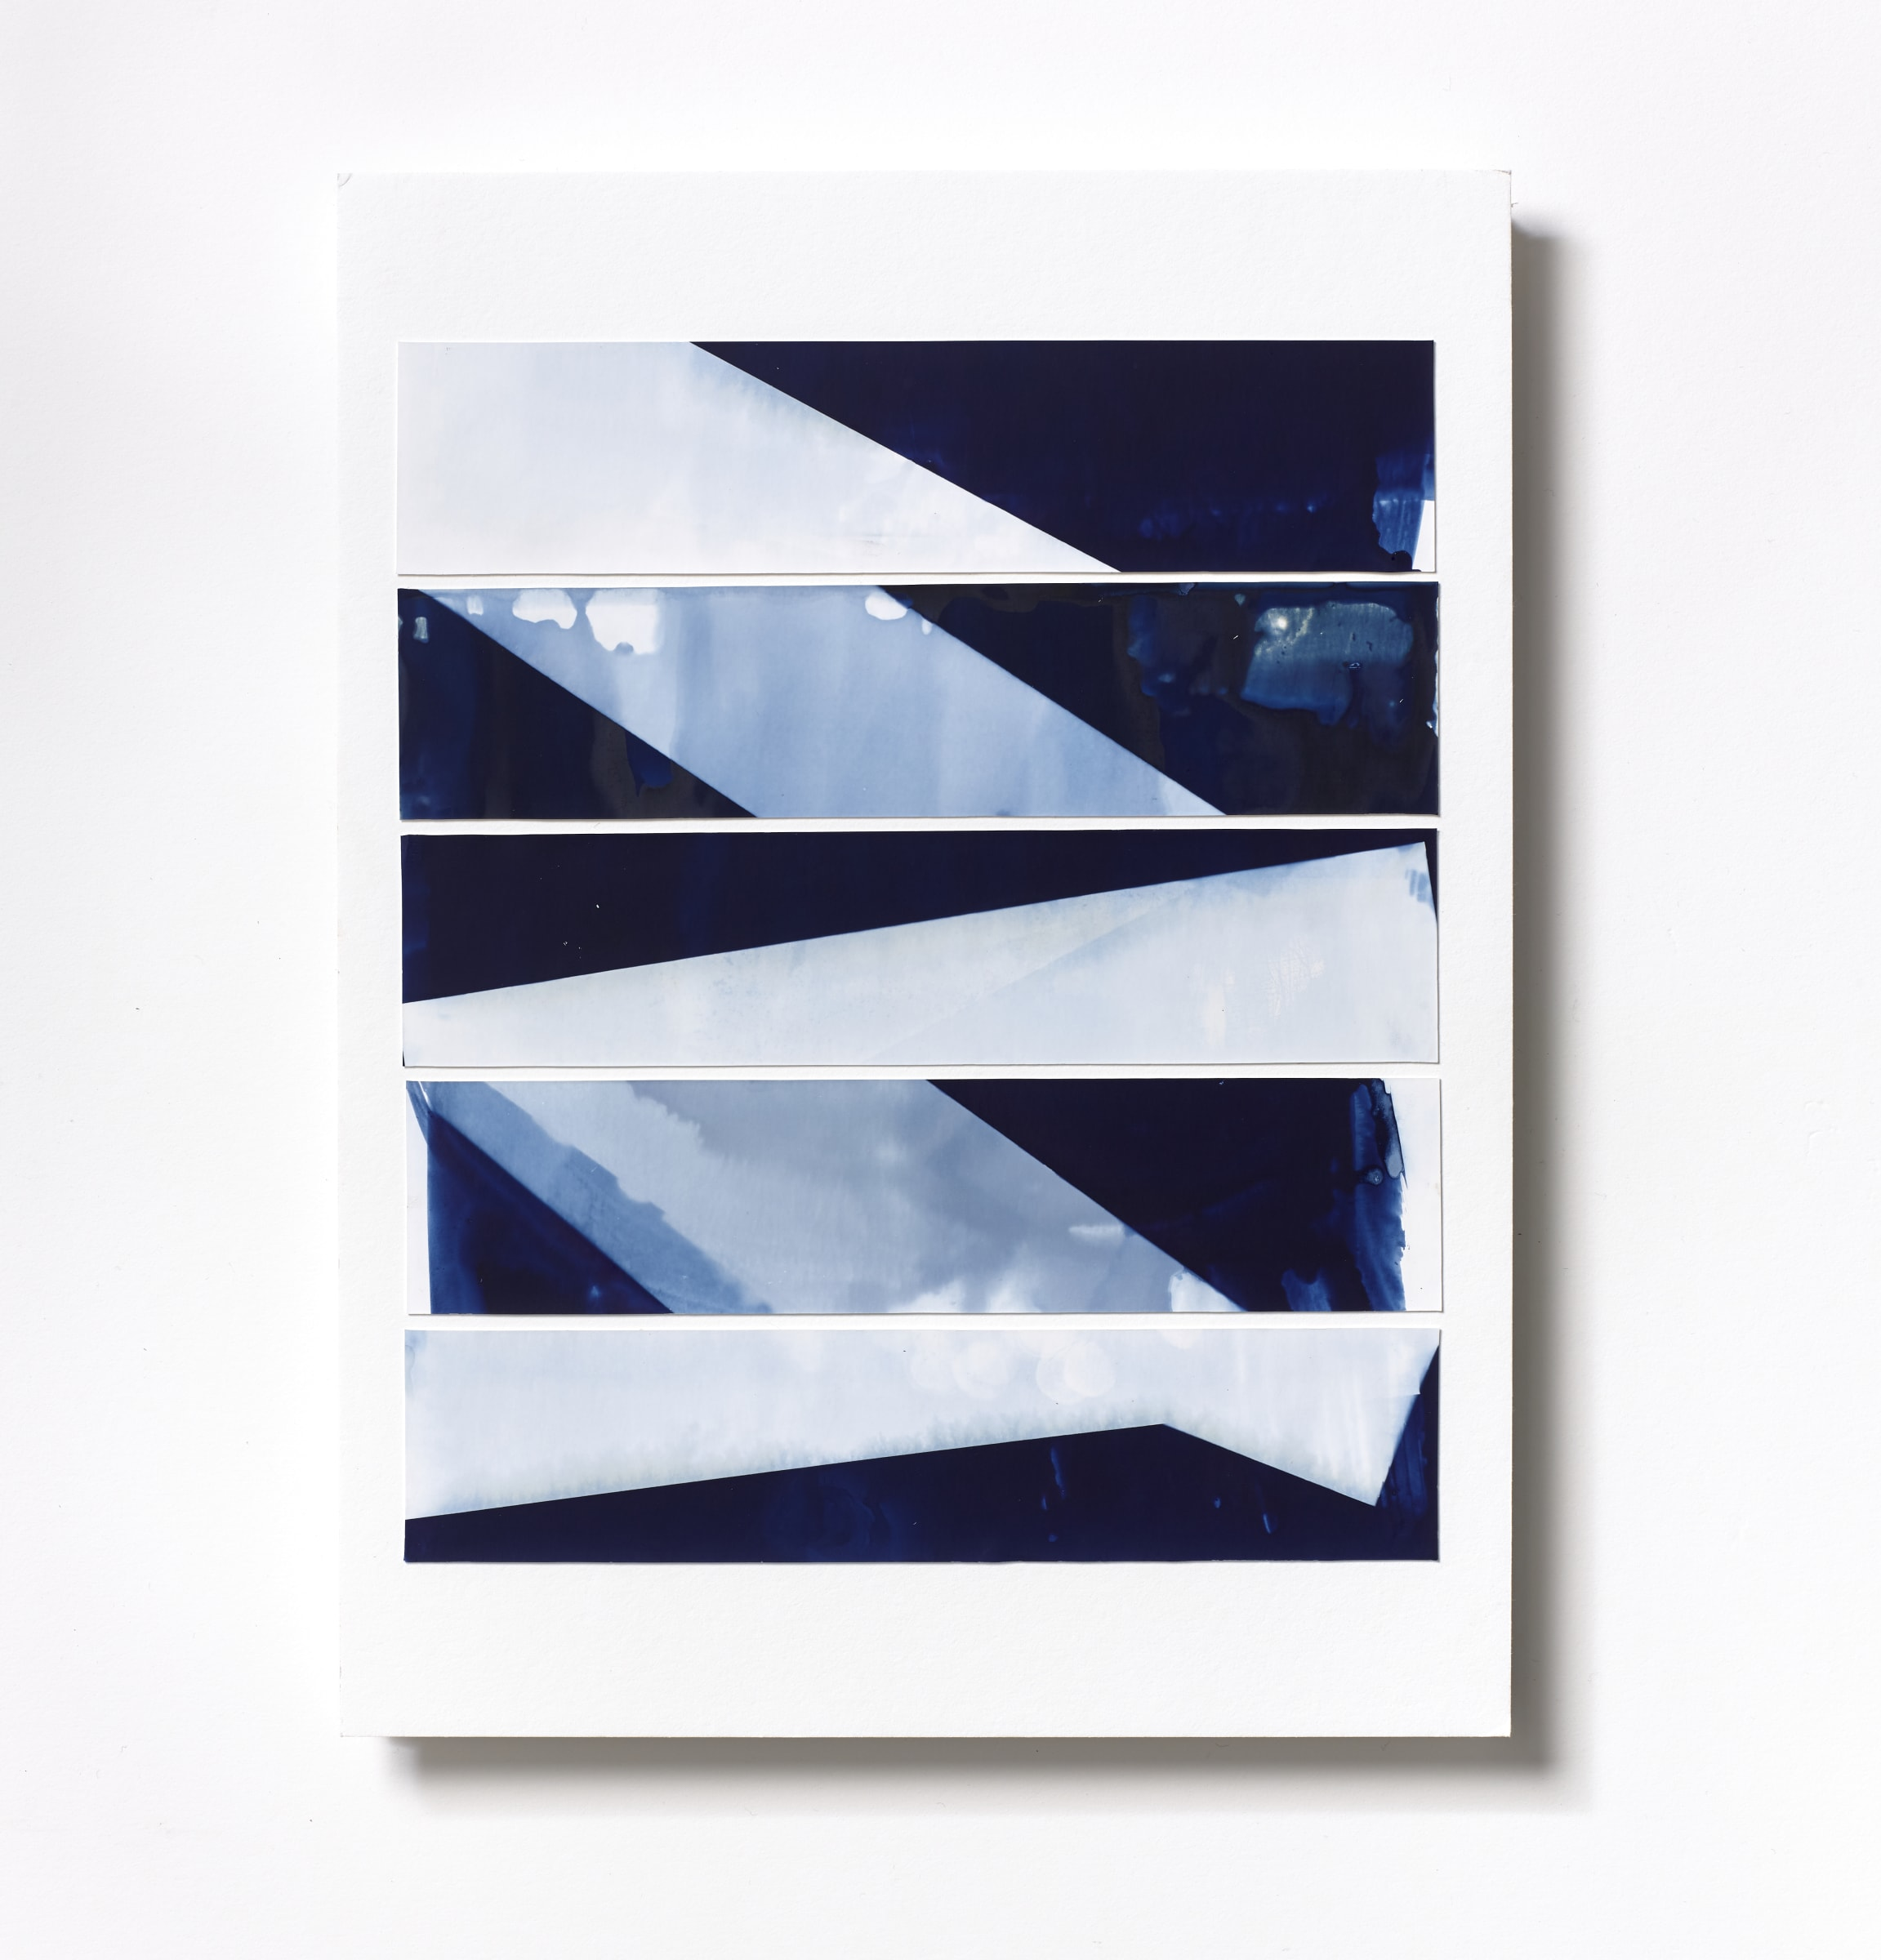 "<span class=""link fancybox-details-link""><a href=""/content/feature/120/artworks563/"">View Detail Page</a></span><div class=""medium"">Cyanotype Collage of five handpainted 1 3/4"" x 7 7/8"" cyanotype photograms on a 12 x 9 inch 8-ply museum board<br /> Print only<br /> Unique</div> <div class=""dimensions"">30.5 x 22.9 cm<br /> 12 x 9 in</div>"